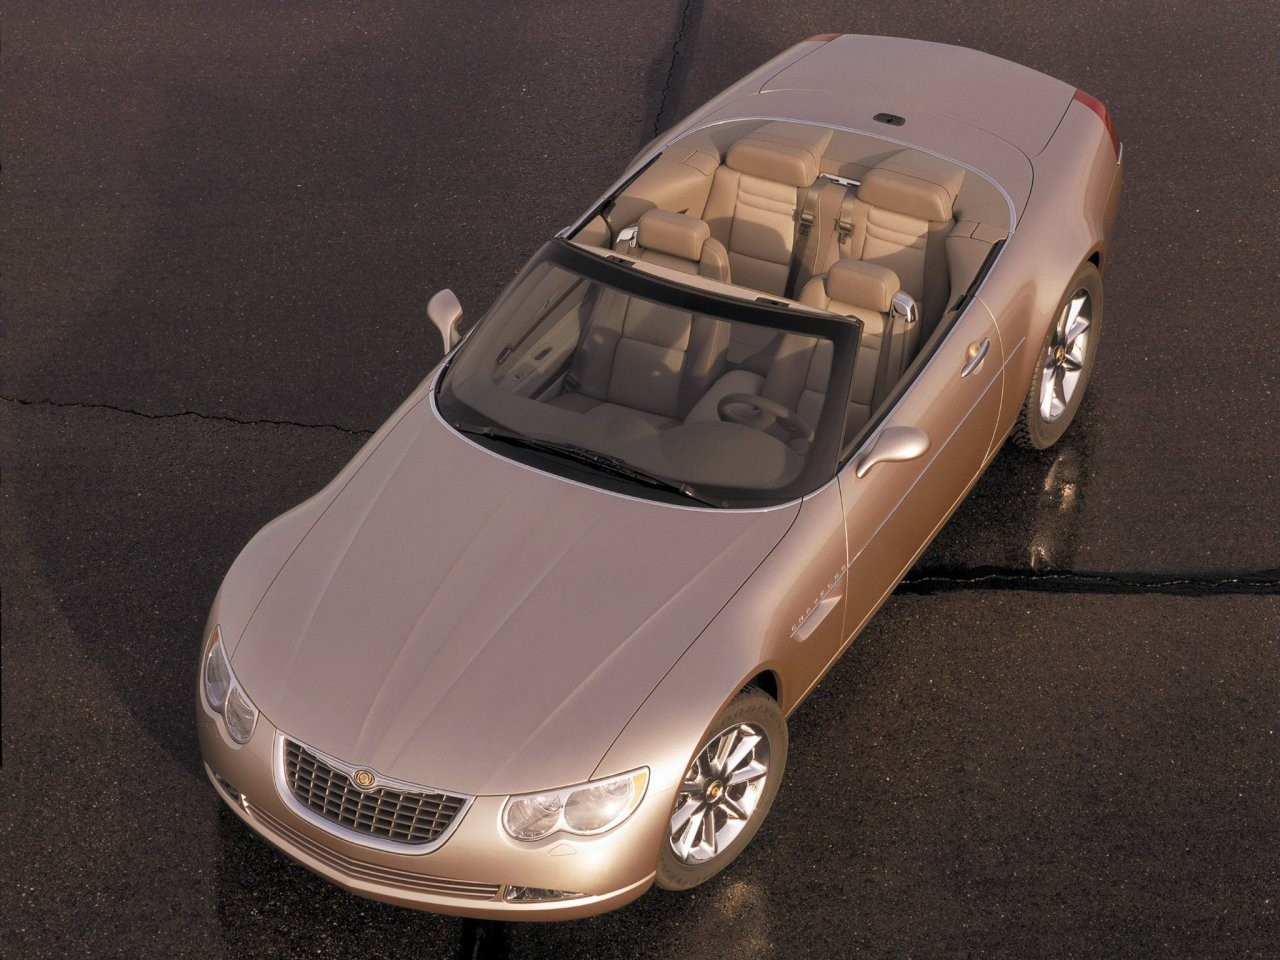 2000 Chrysler 300C concept 4